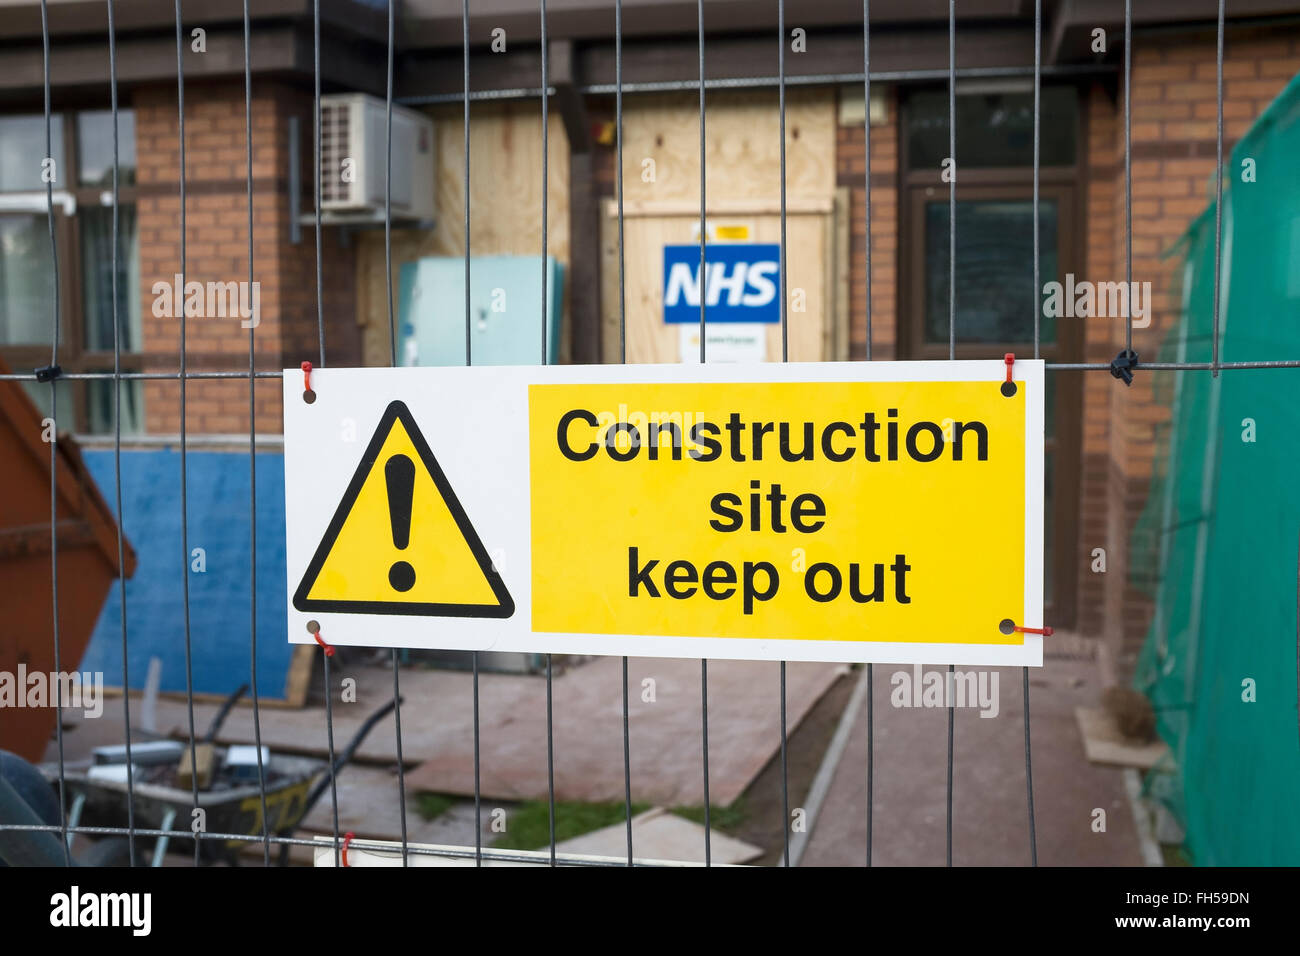 Construction site sign at a NHS hospital - Stock Image